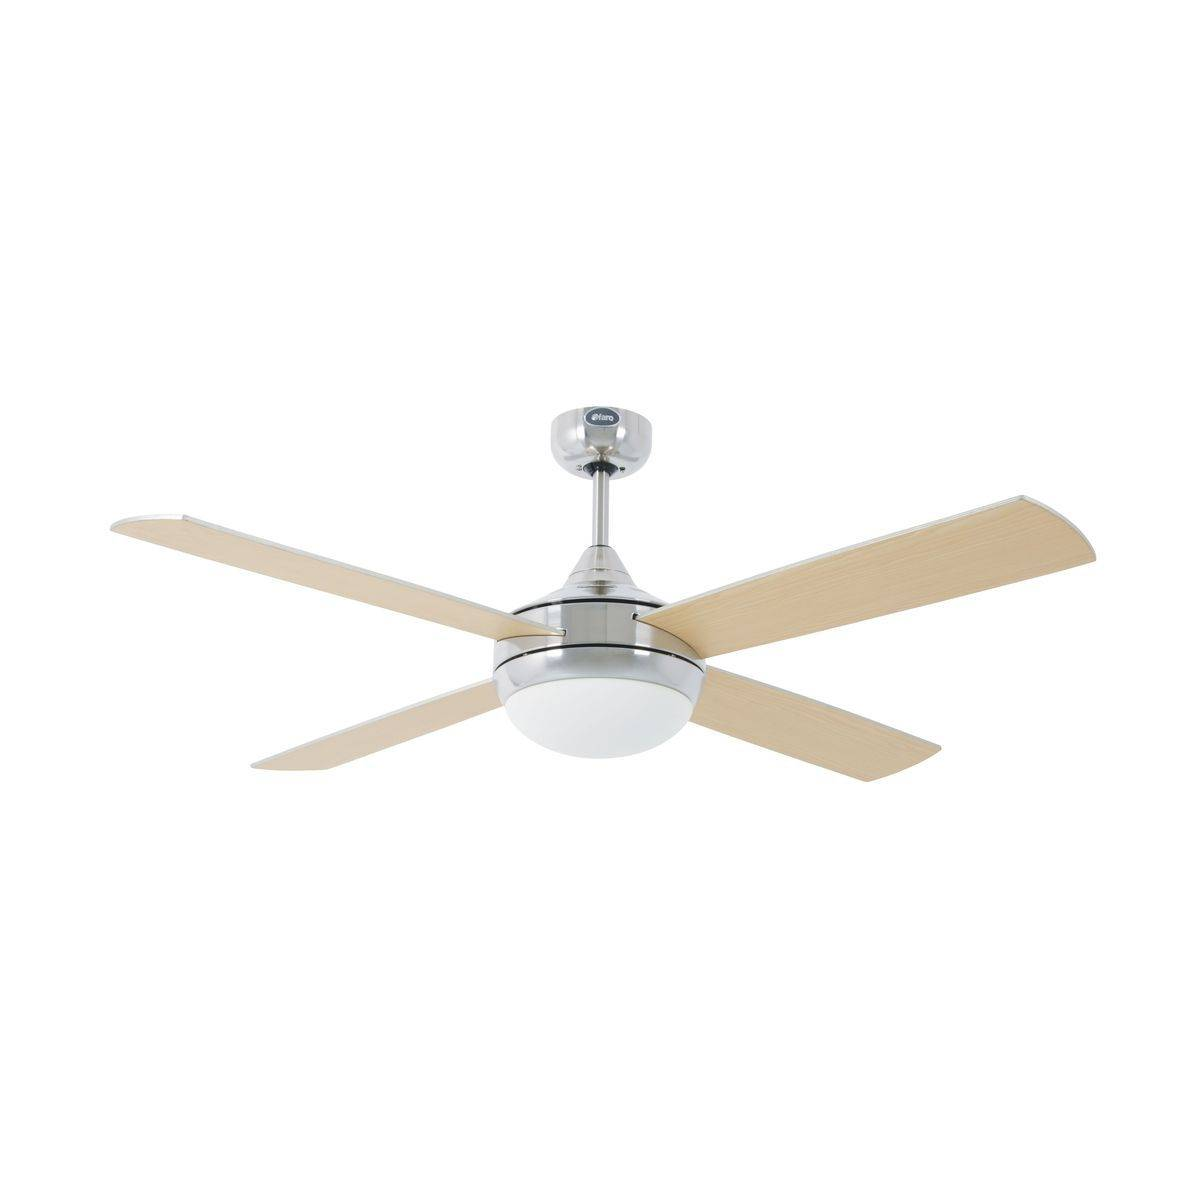 Ventilateur Plafond Icaria 132cm Nickel Gris Erable